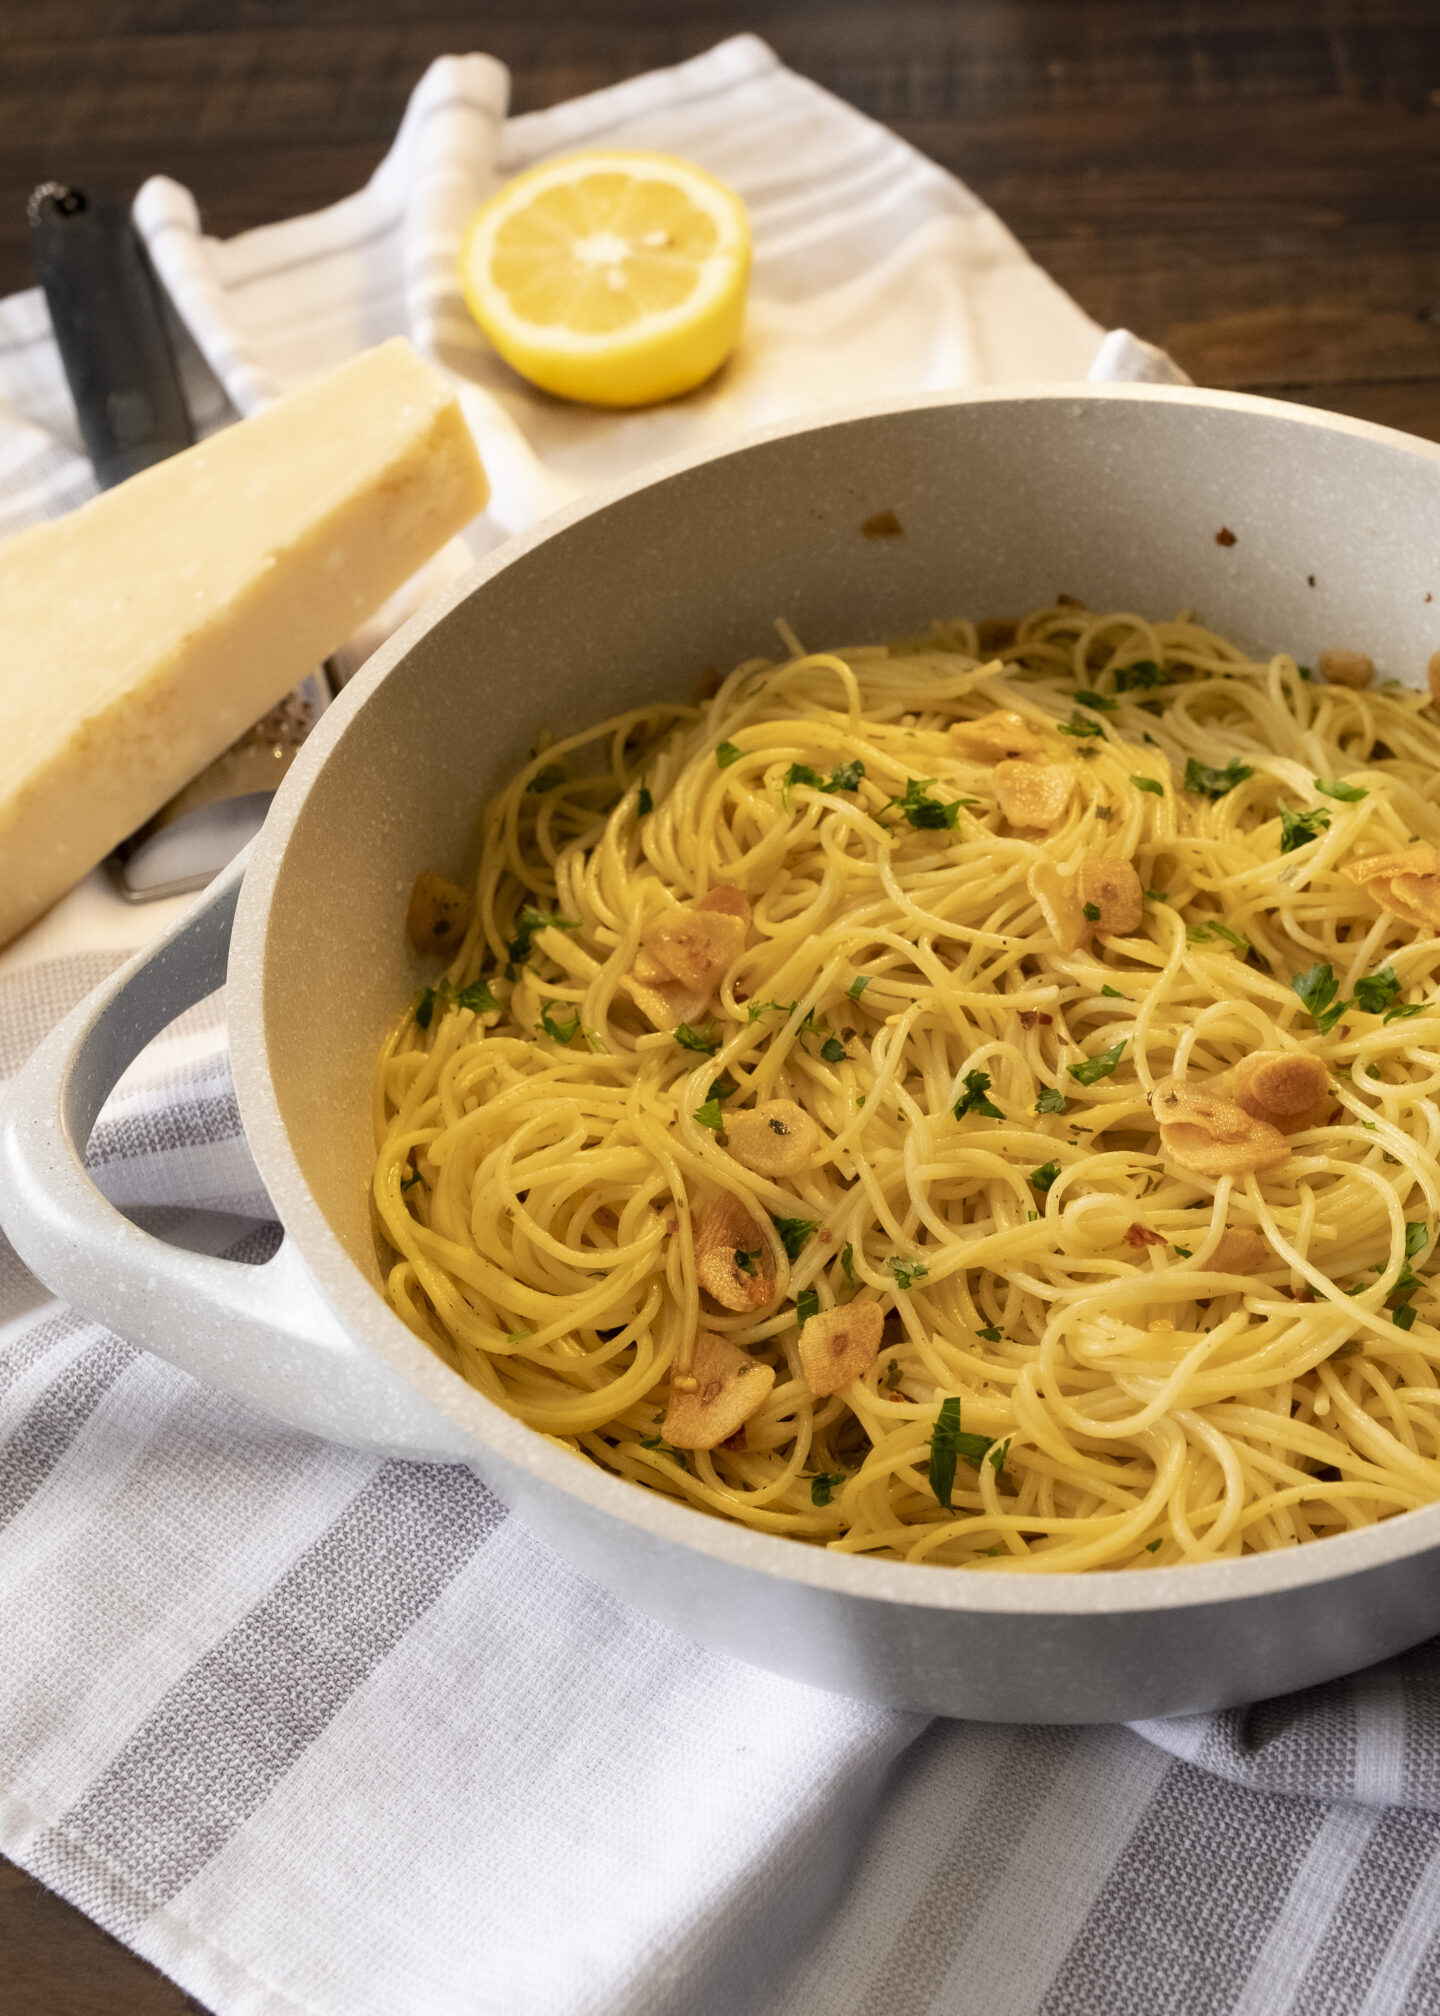 spaghetti with garlic oil and chili flake recipe